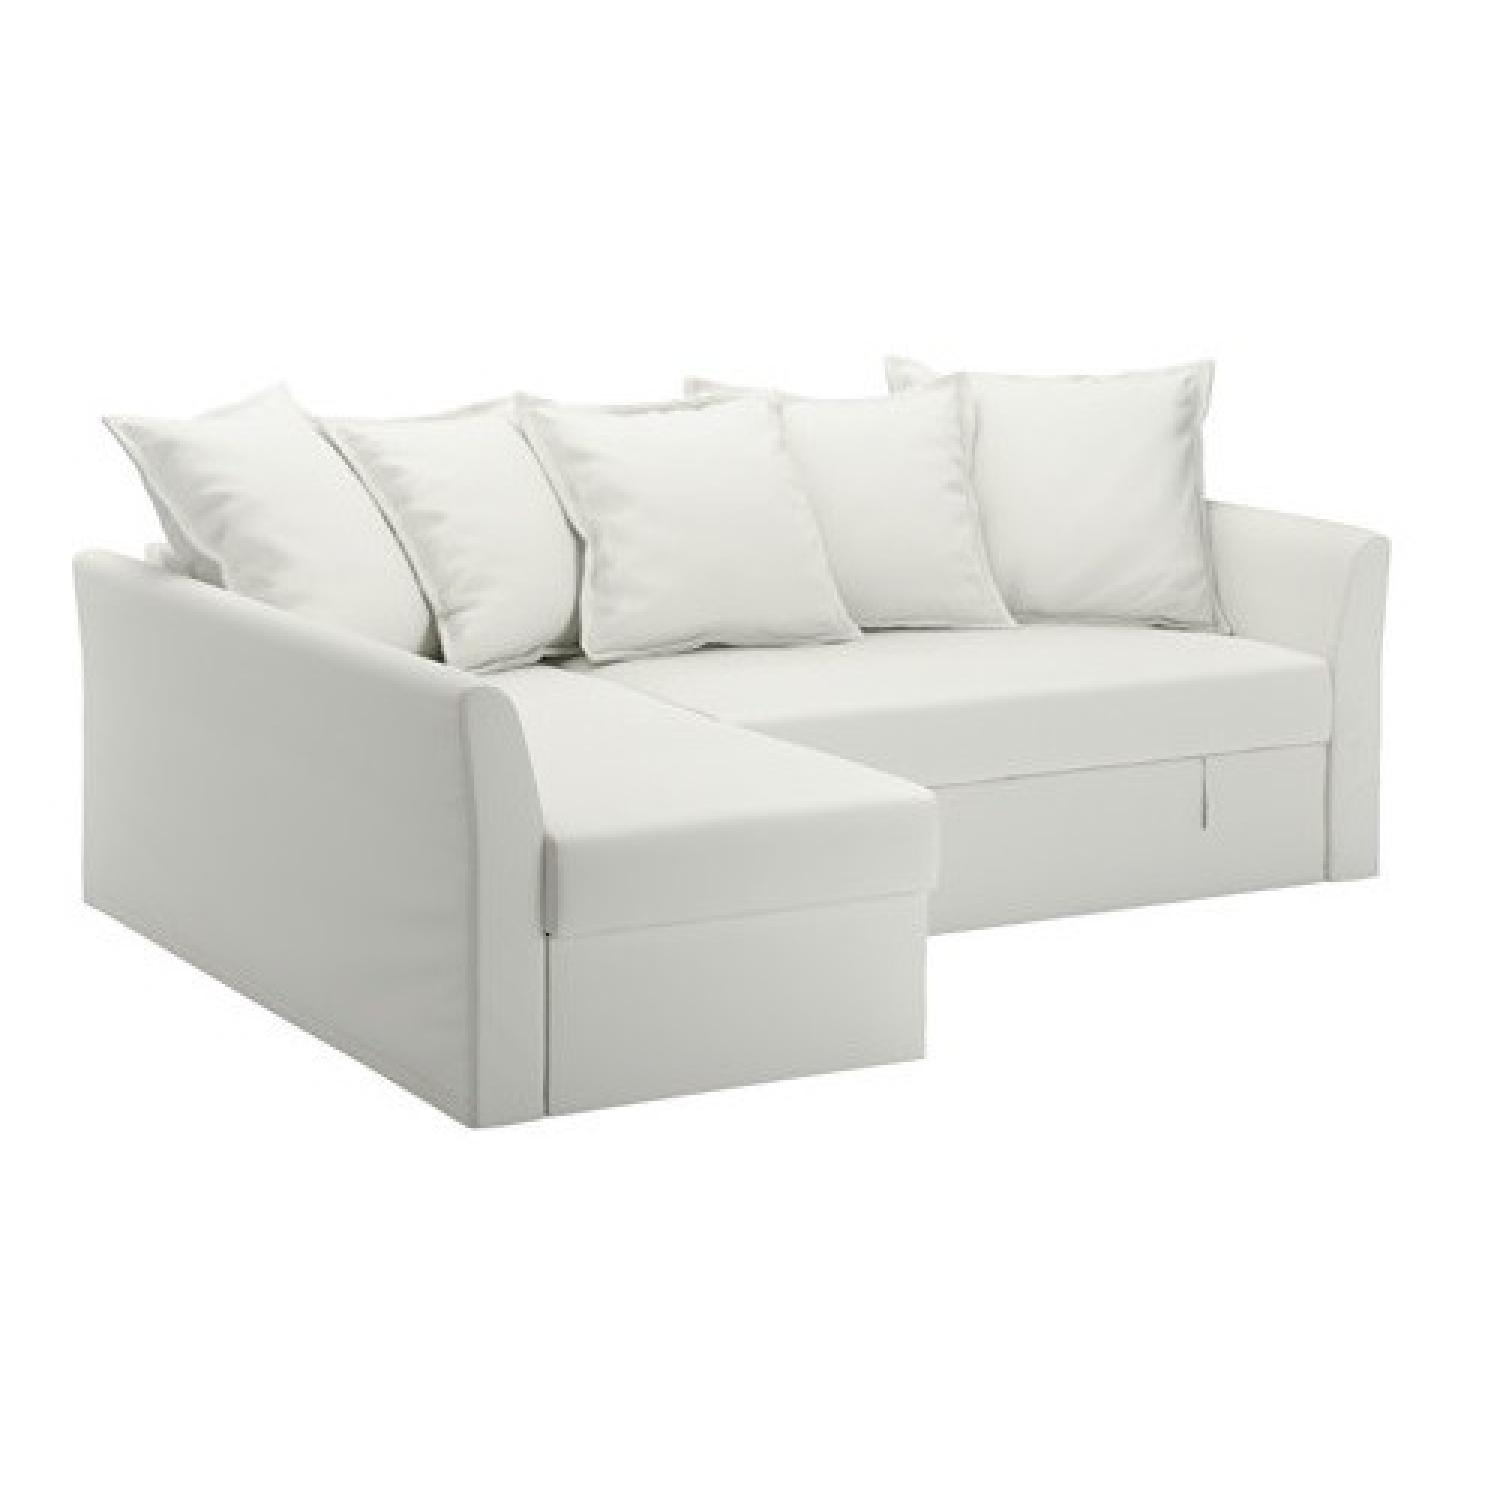 Ikea Holmsund Sleeper Sectional Sofa ...